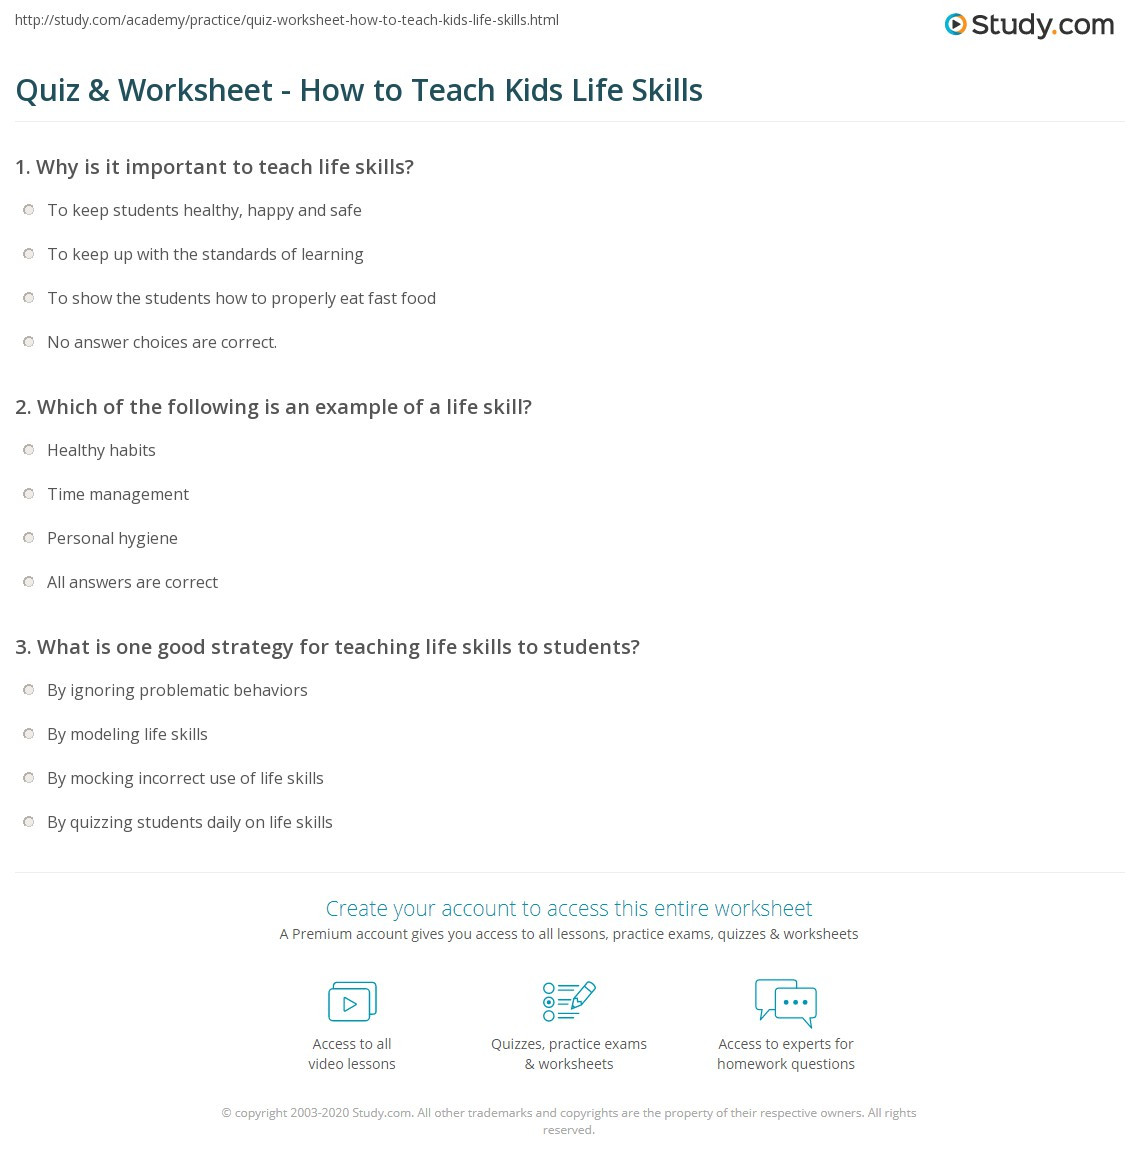 Free Printable Life Skills Worksheets Quiz & Worksheet How to Teach Kids Life Skills